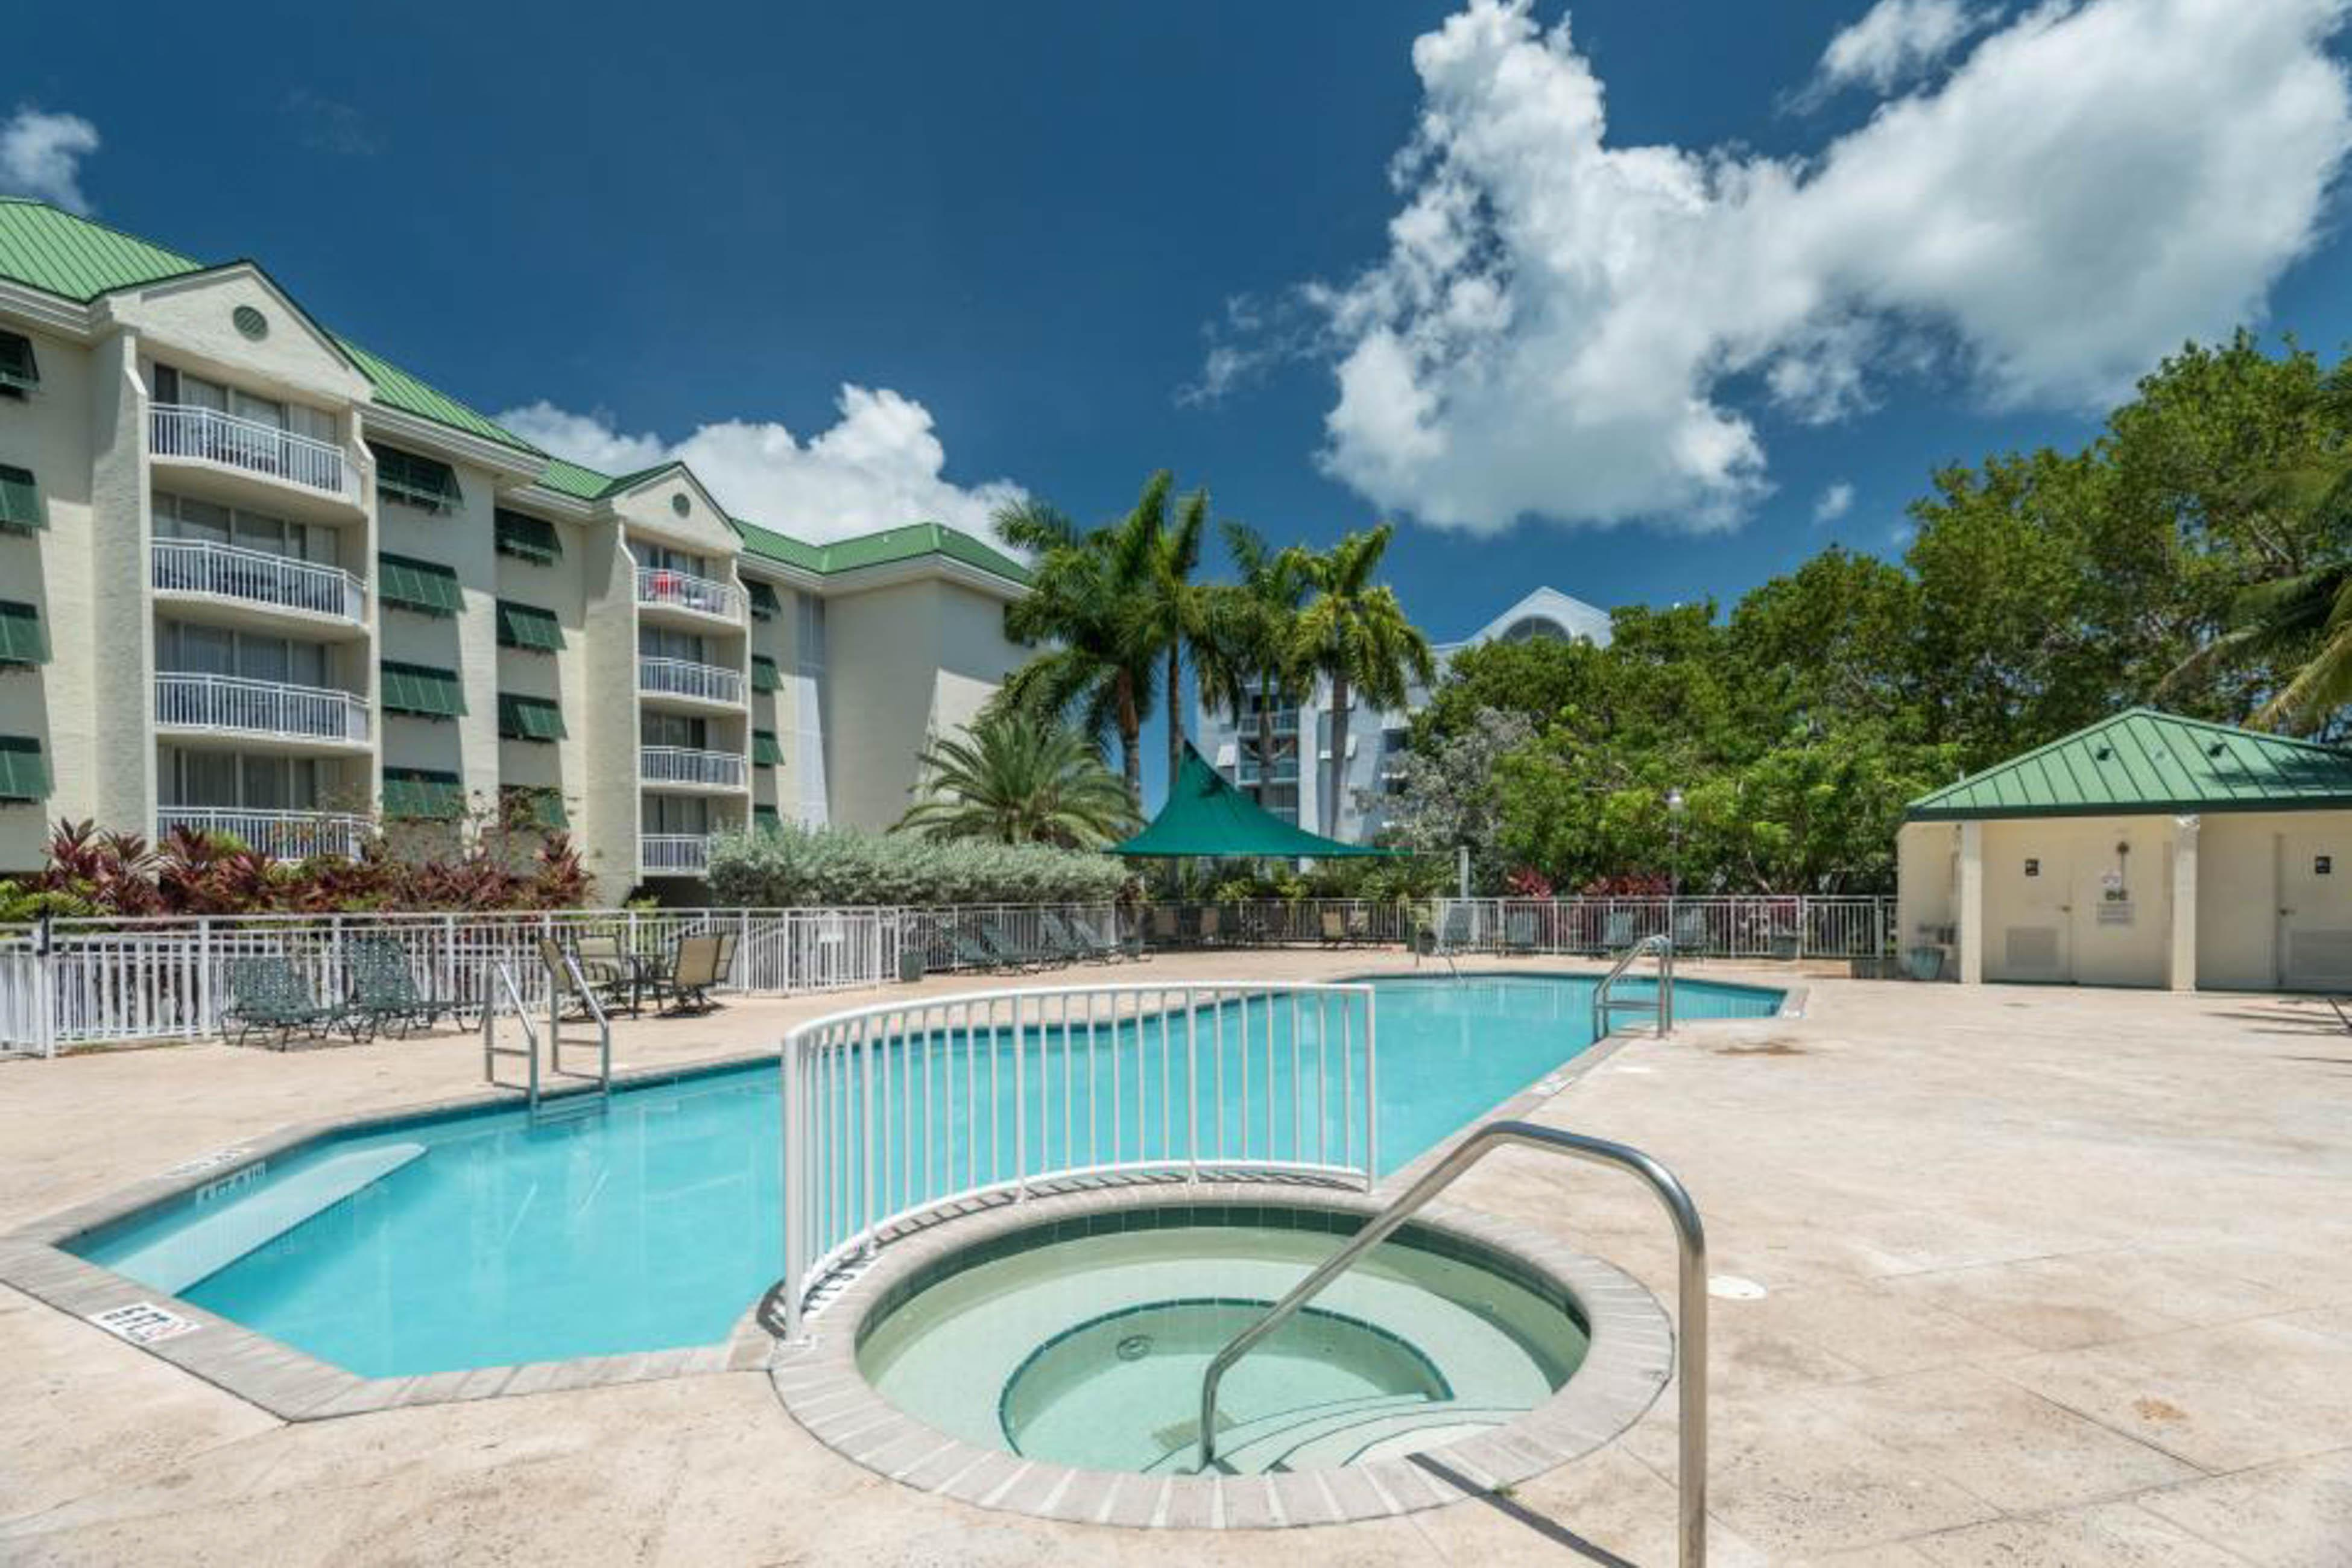 Property Image 2 - Sunrise Suites - Grand Bahama Suite 106